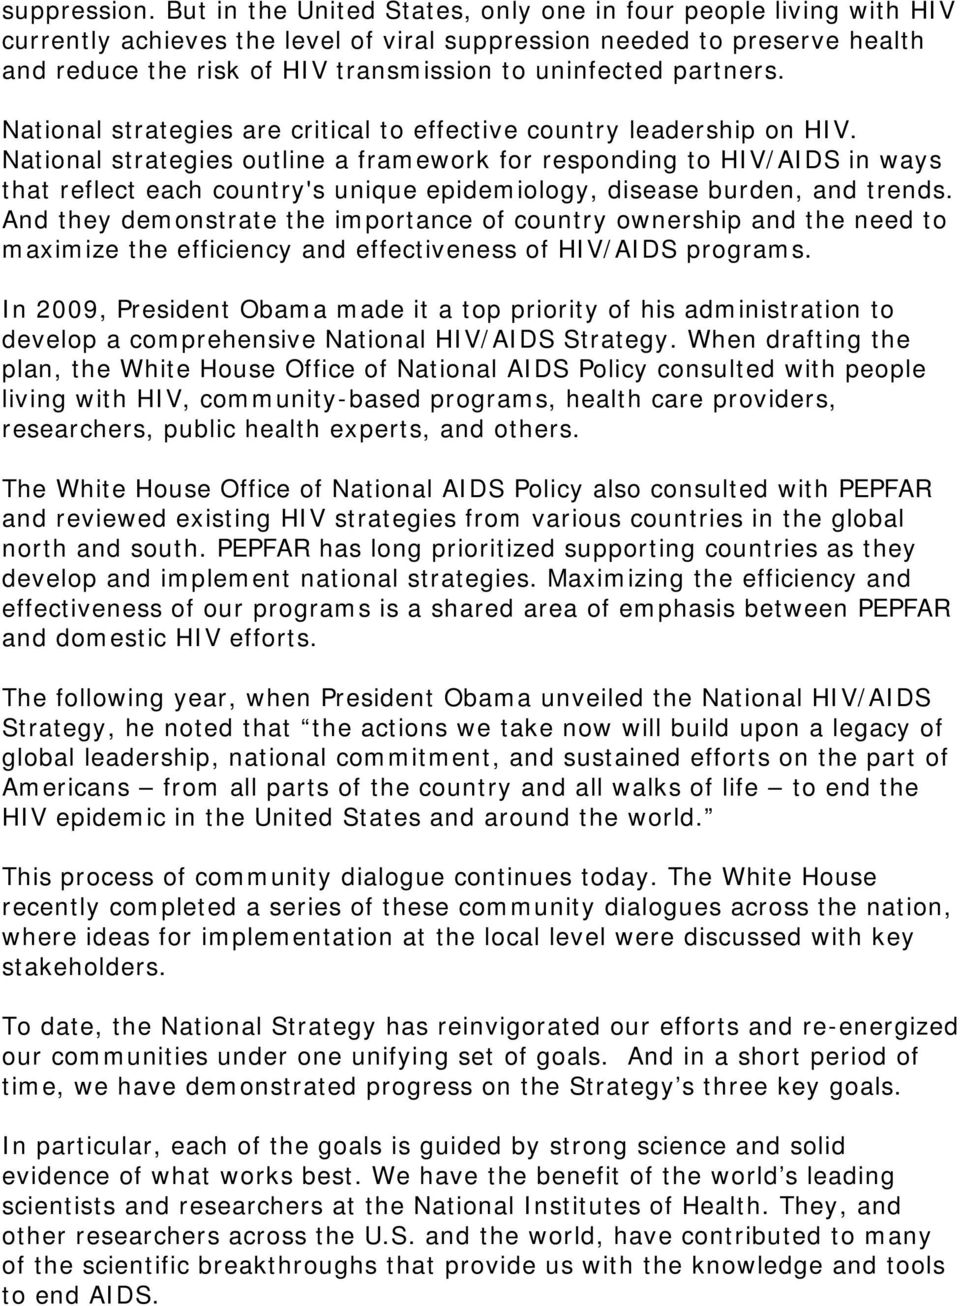 partners. National strategies are critical to effective country leadership on HIV.